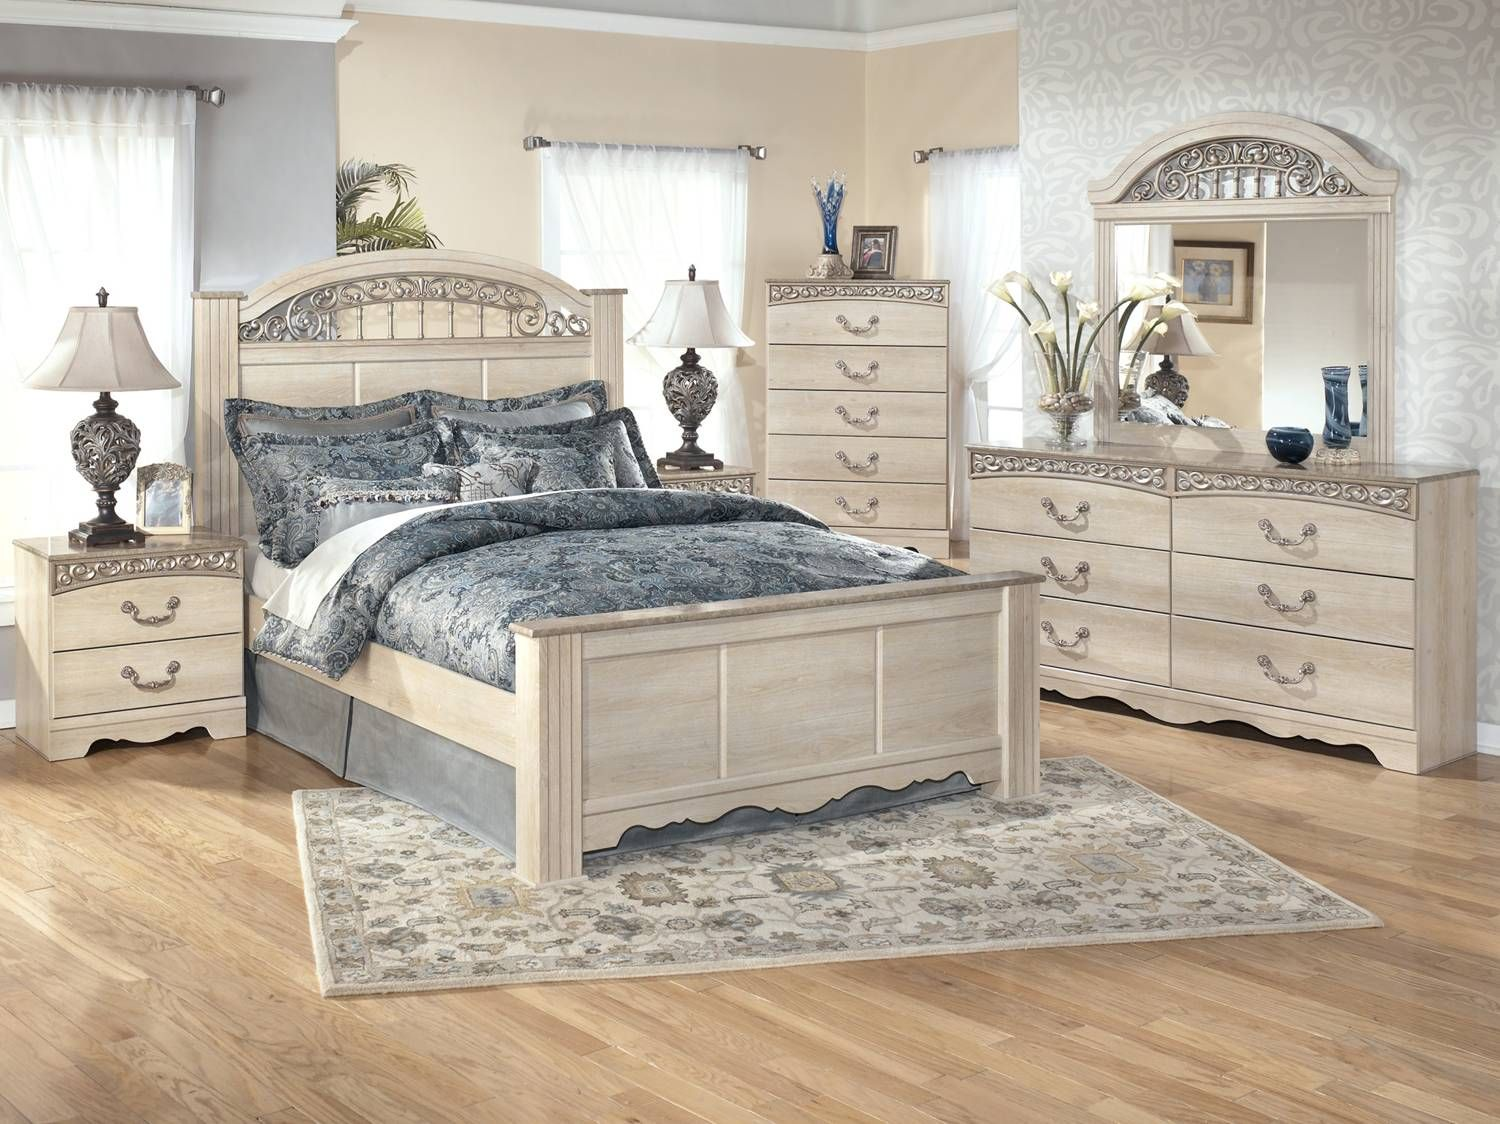 Shop For The Signature Design By Ashley Catalina Queen Bedroom Group At  Suburban Furniture   Your Succasunna, Randolph, Morristown, Northern New  Jersey ...